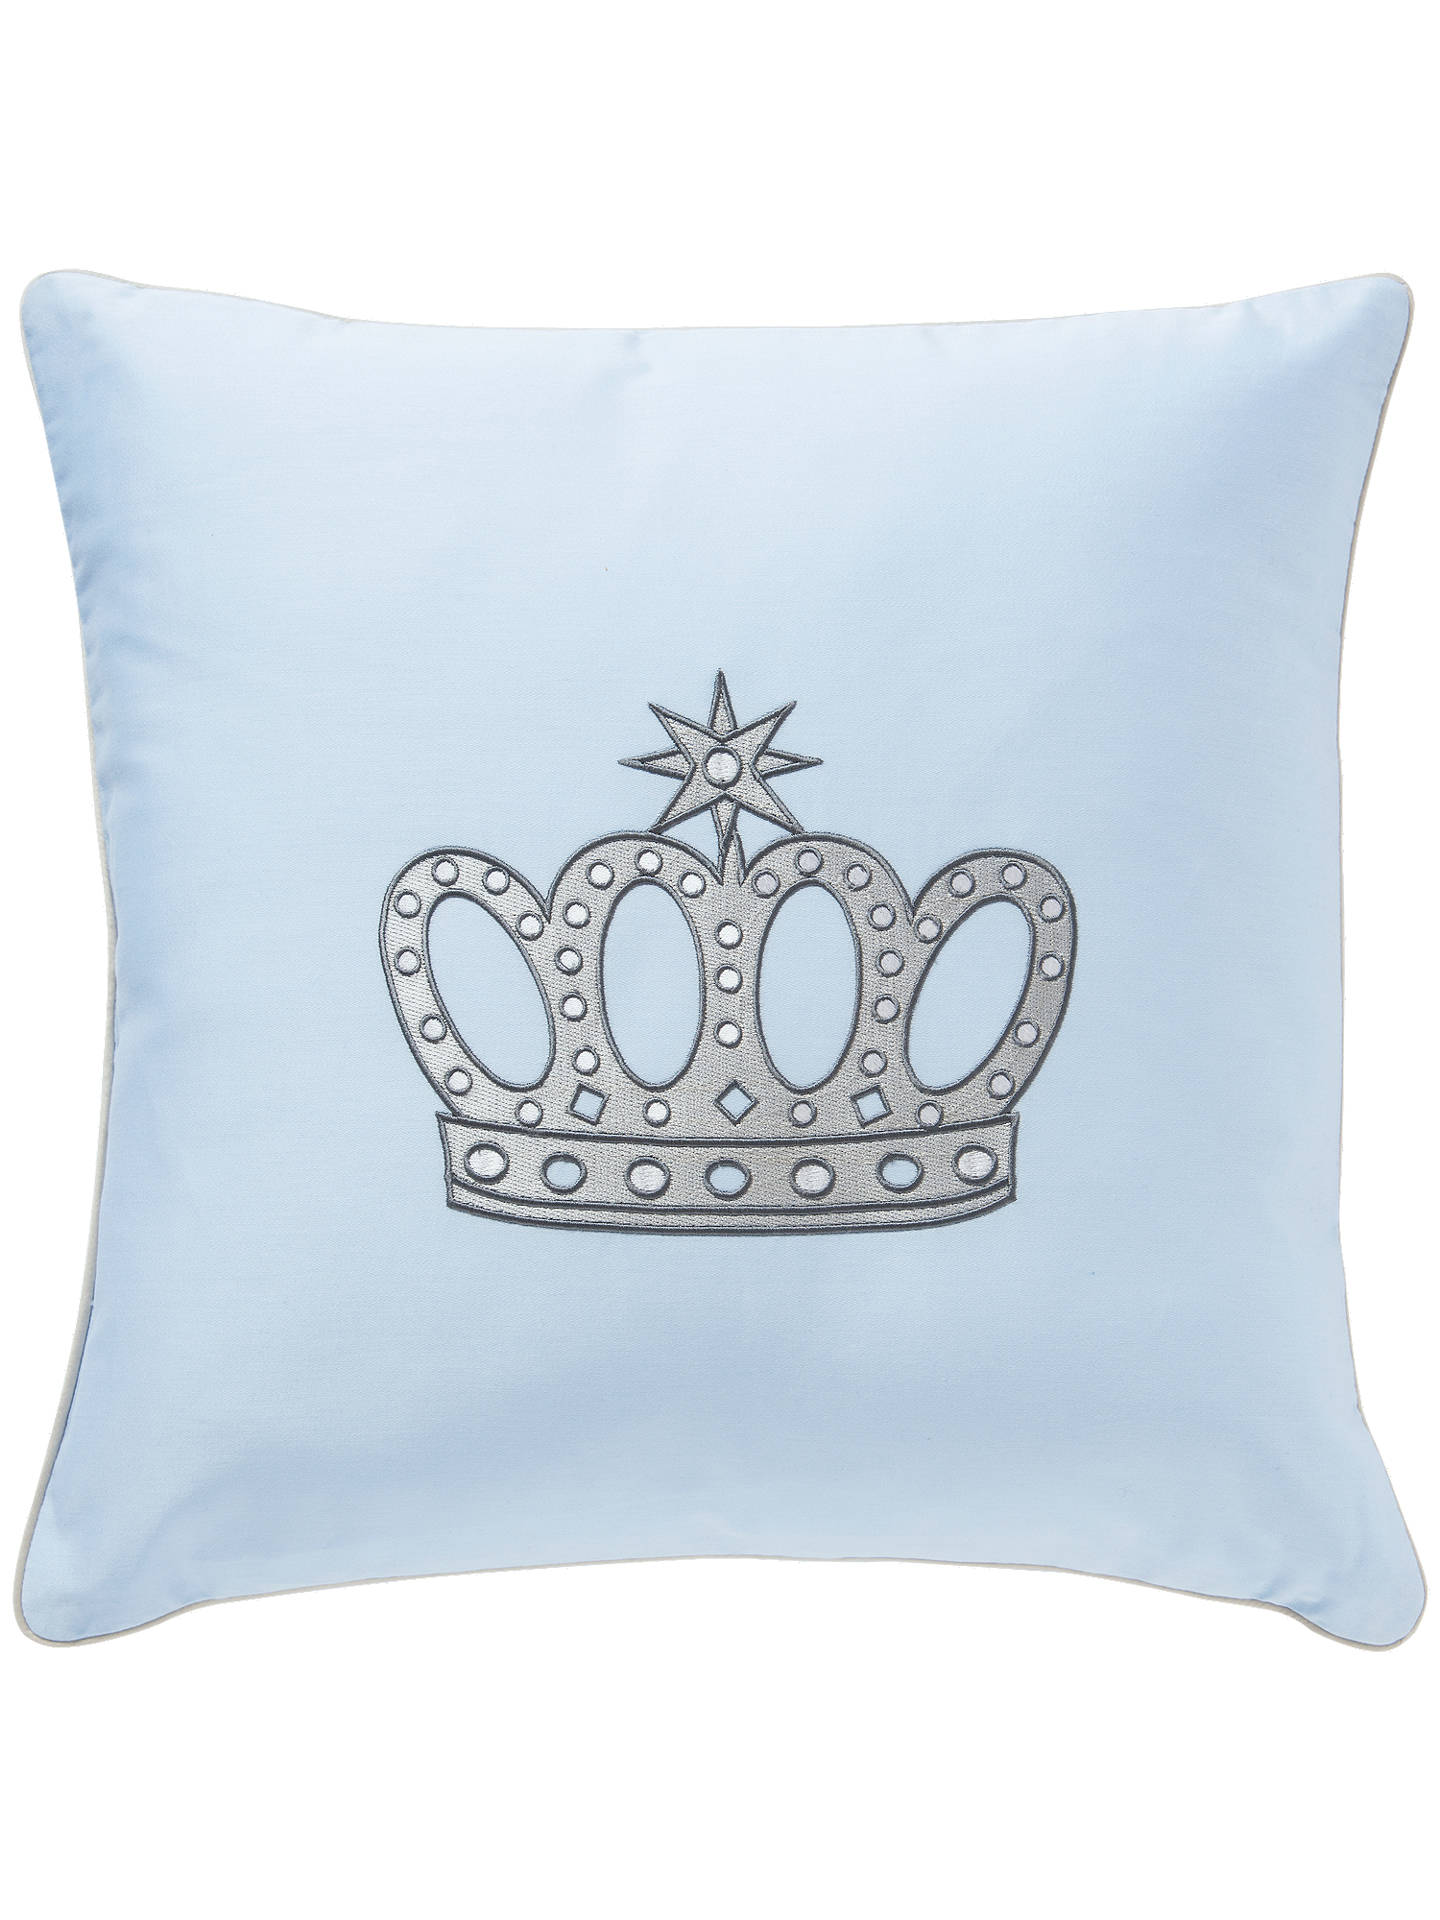 Buy Rachel Riley My Little Prince Embroidered Crown Cushion, Light Blue Online at johnlewis.com